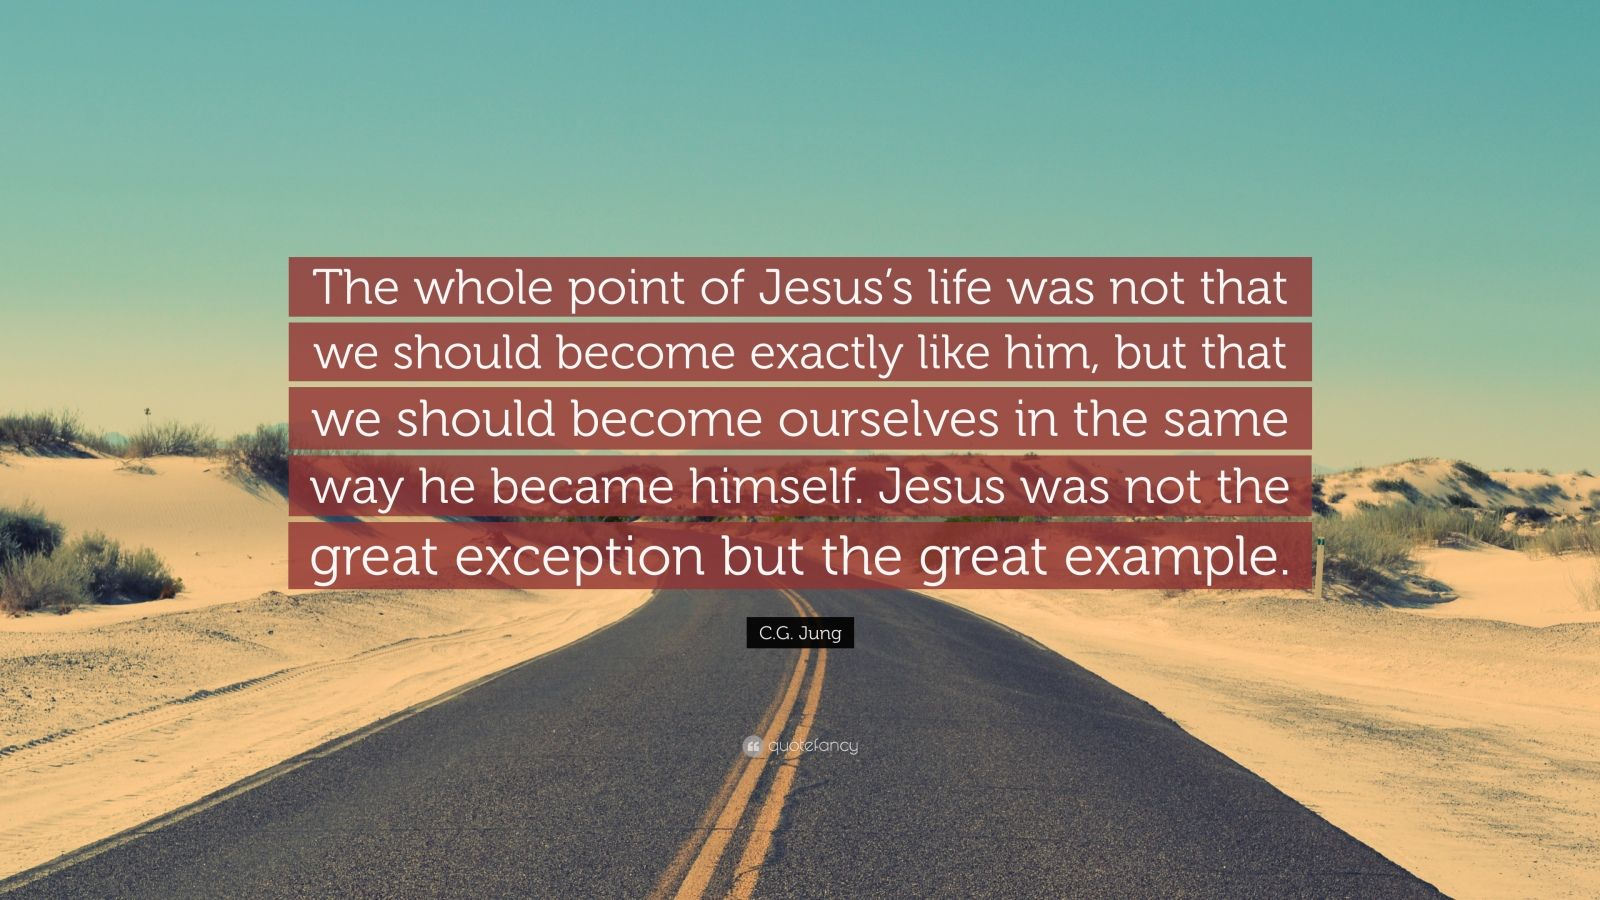 """C.G. Jung Quote: """"The whole point of Jesus's life was not that we should become exactly like him, but that we should become ourselves in the same way he became himself. Jesus was not the great exception but the great example."""""""